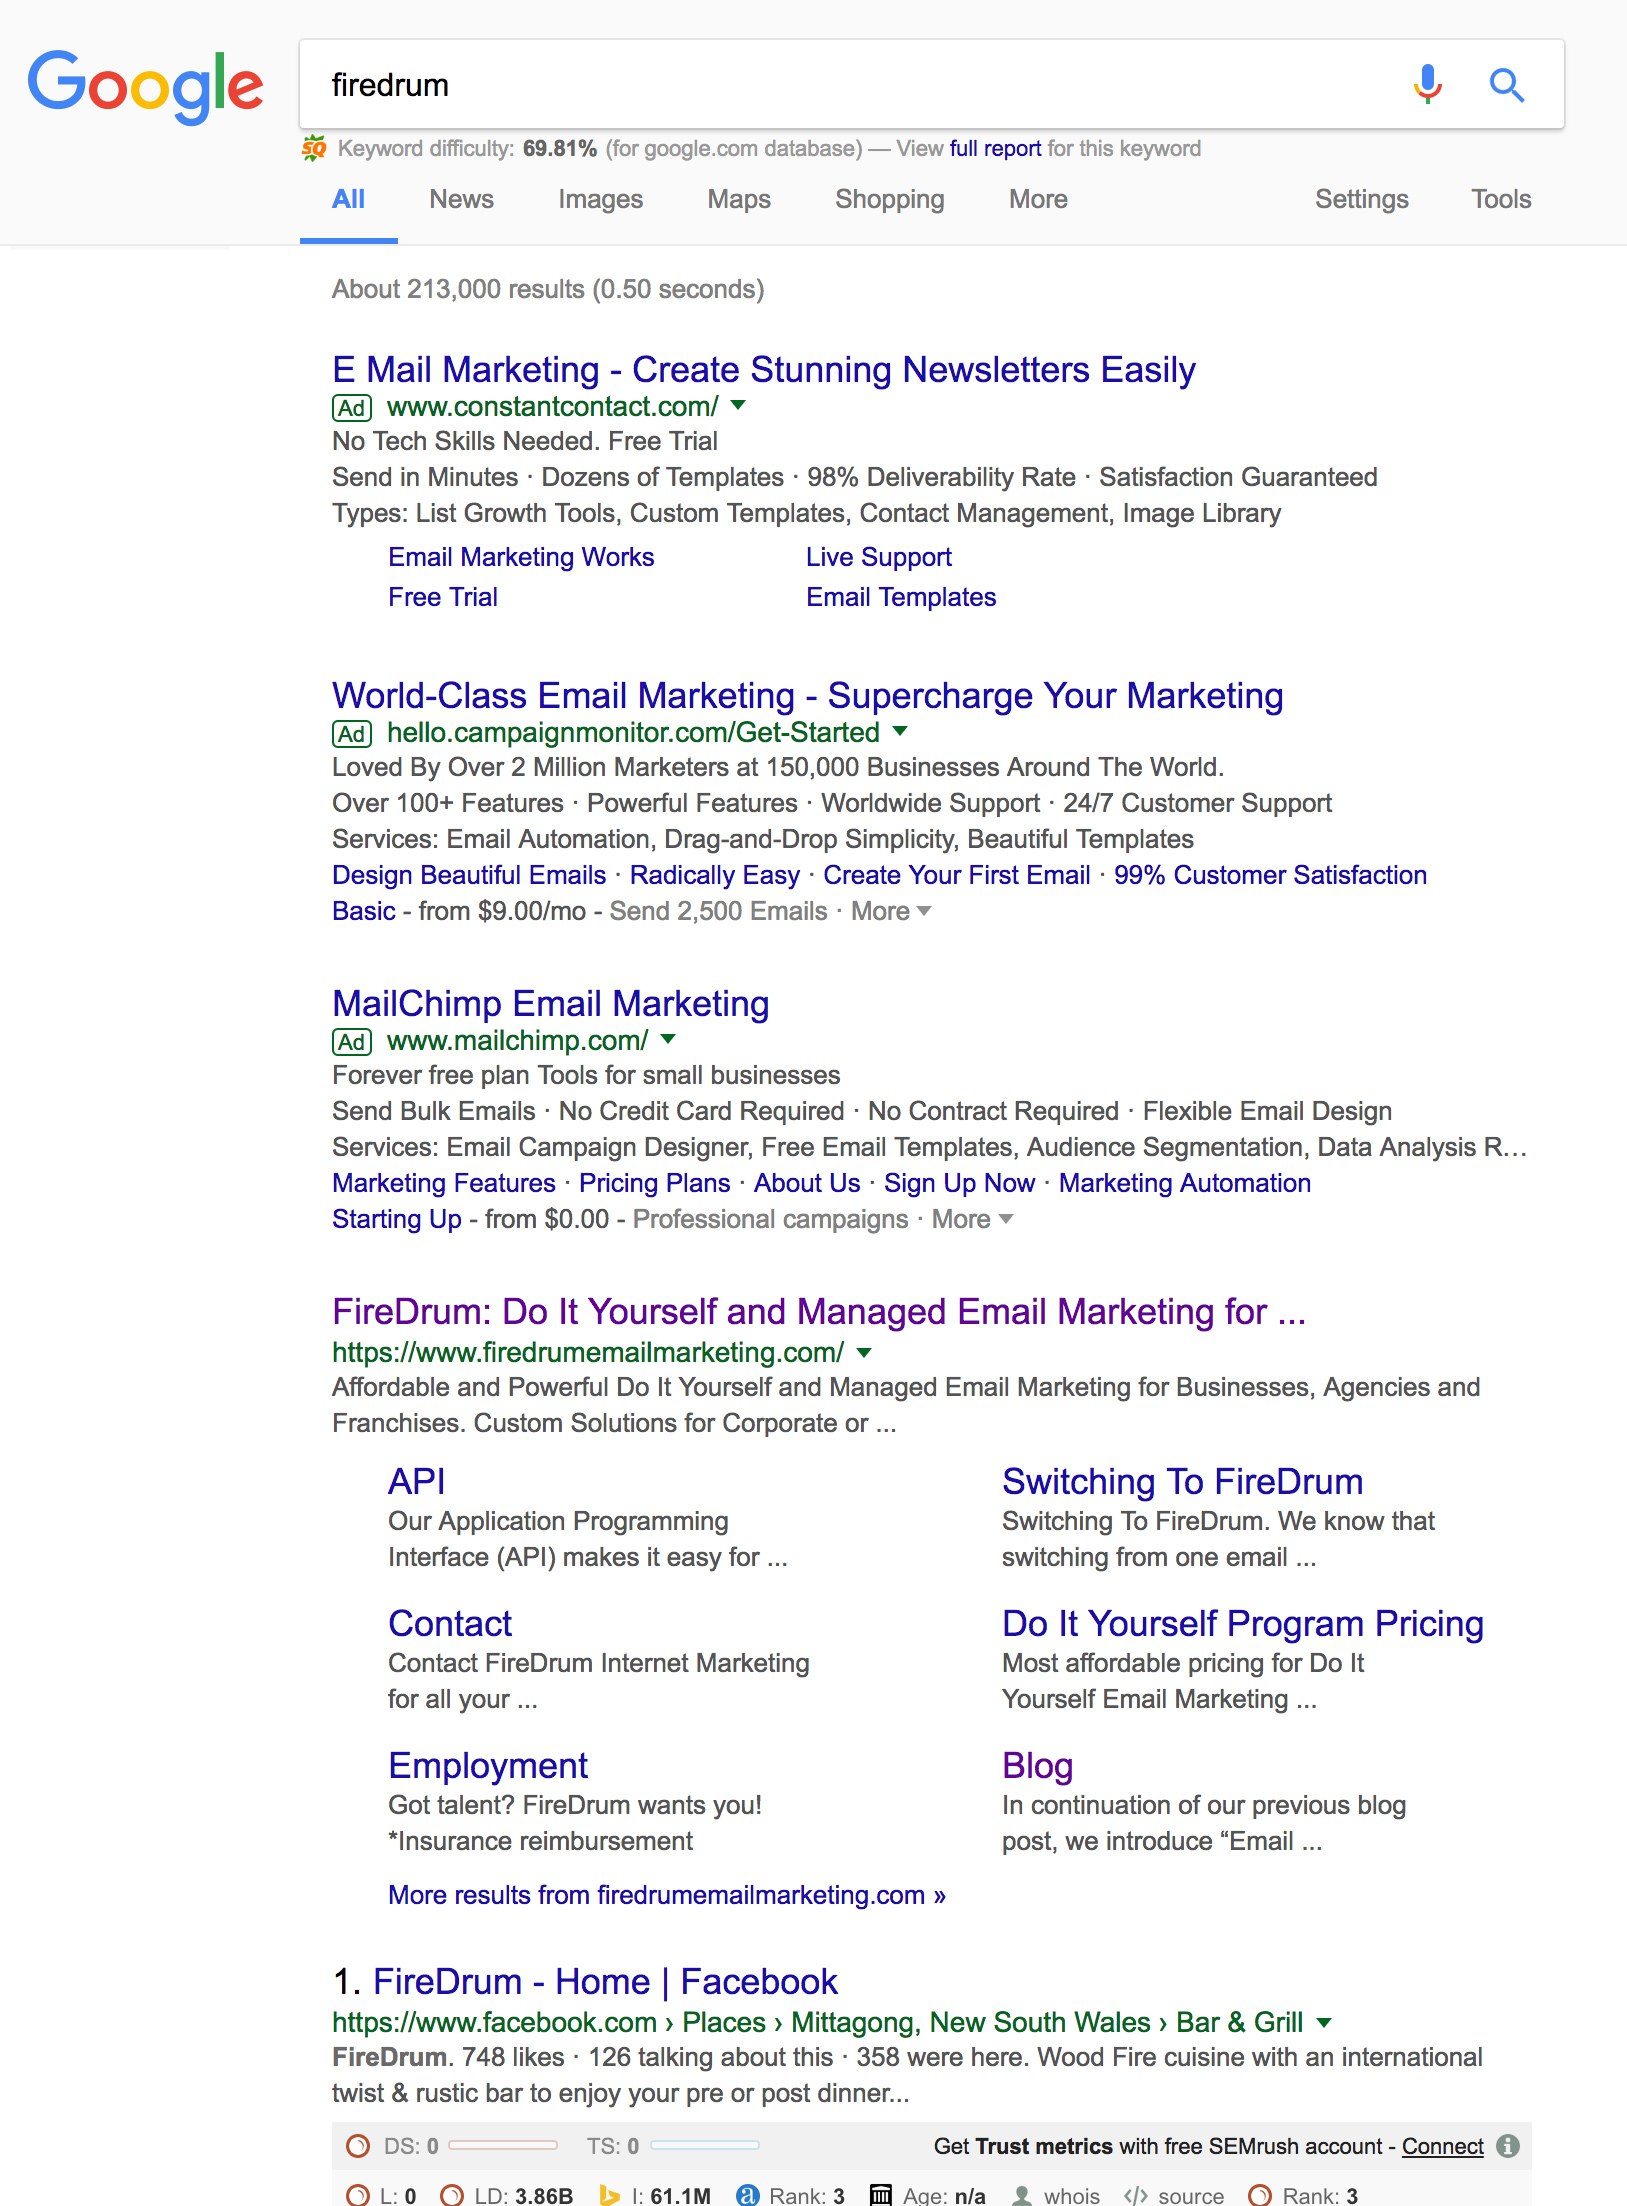 SEO PPC FireDrum Search